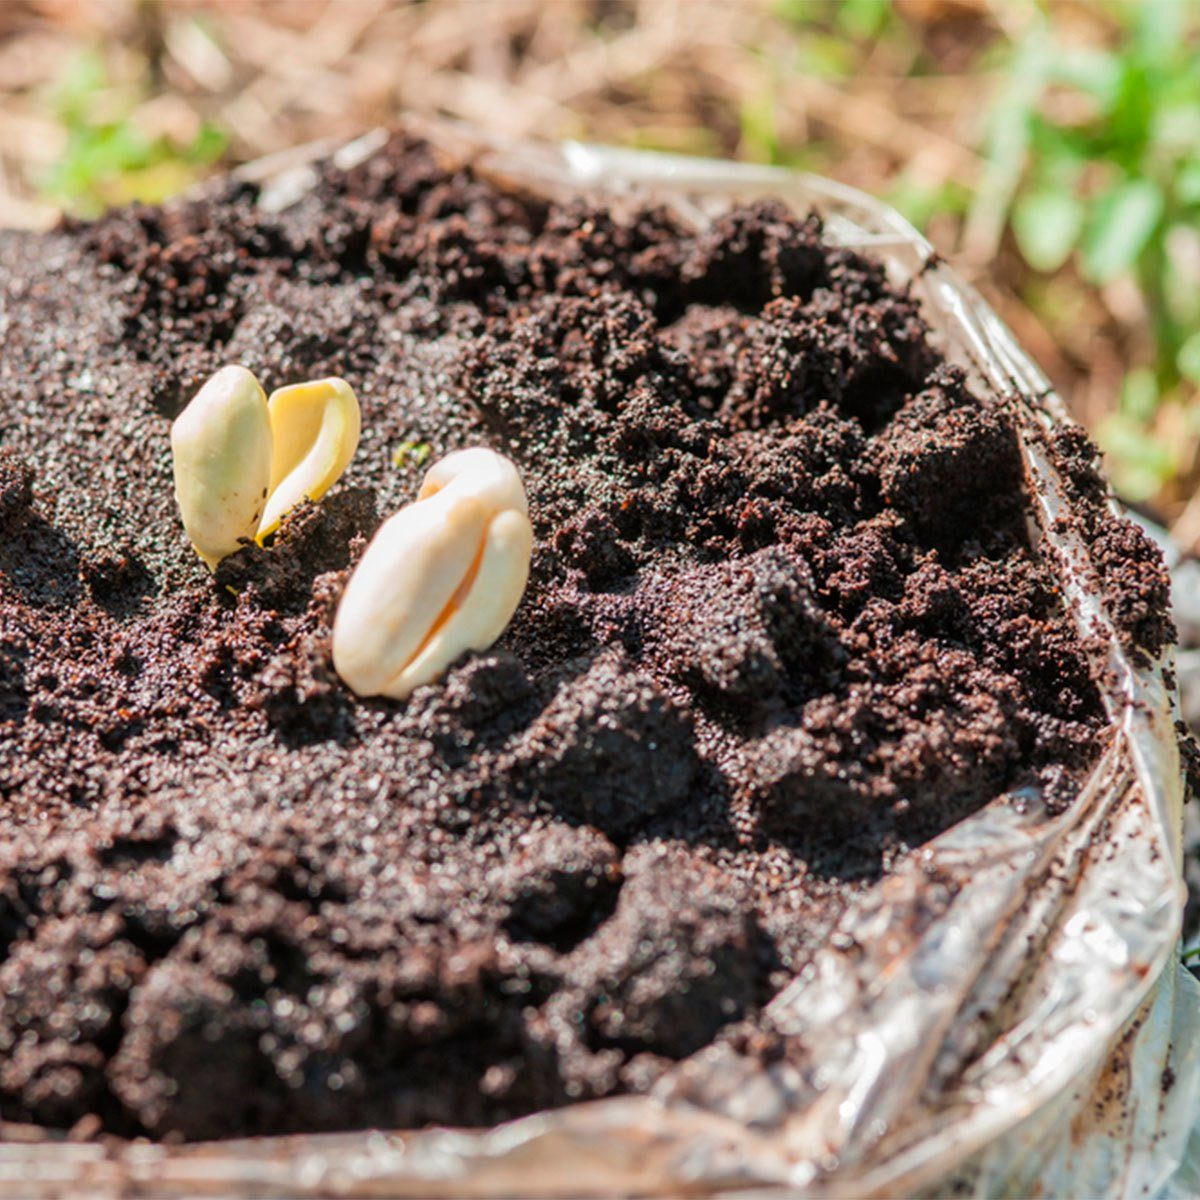 seedlings in coffee grounds